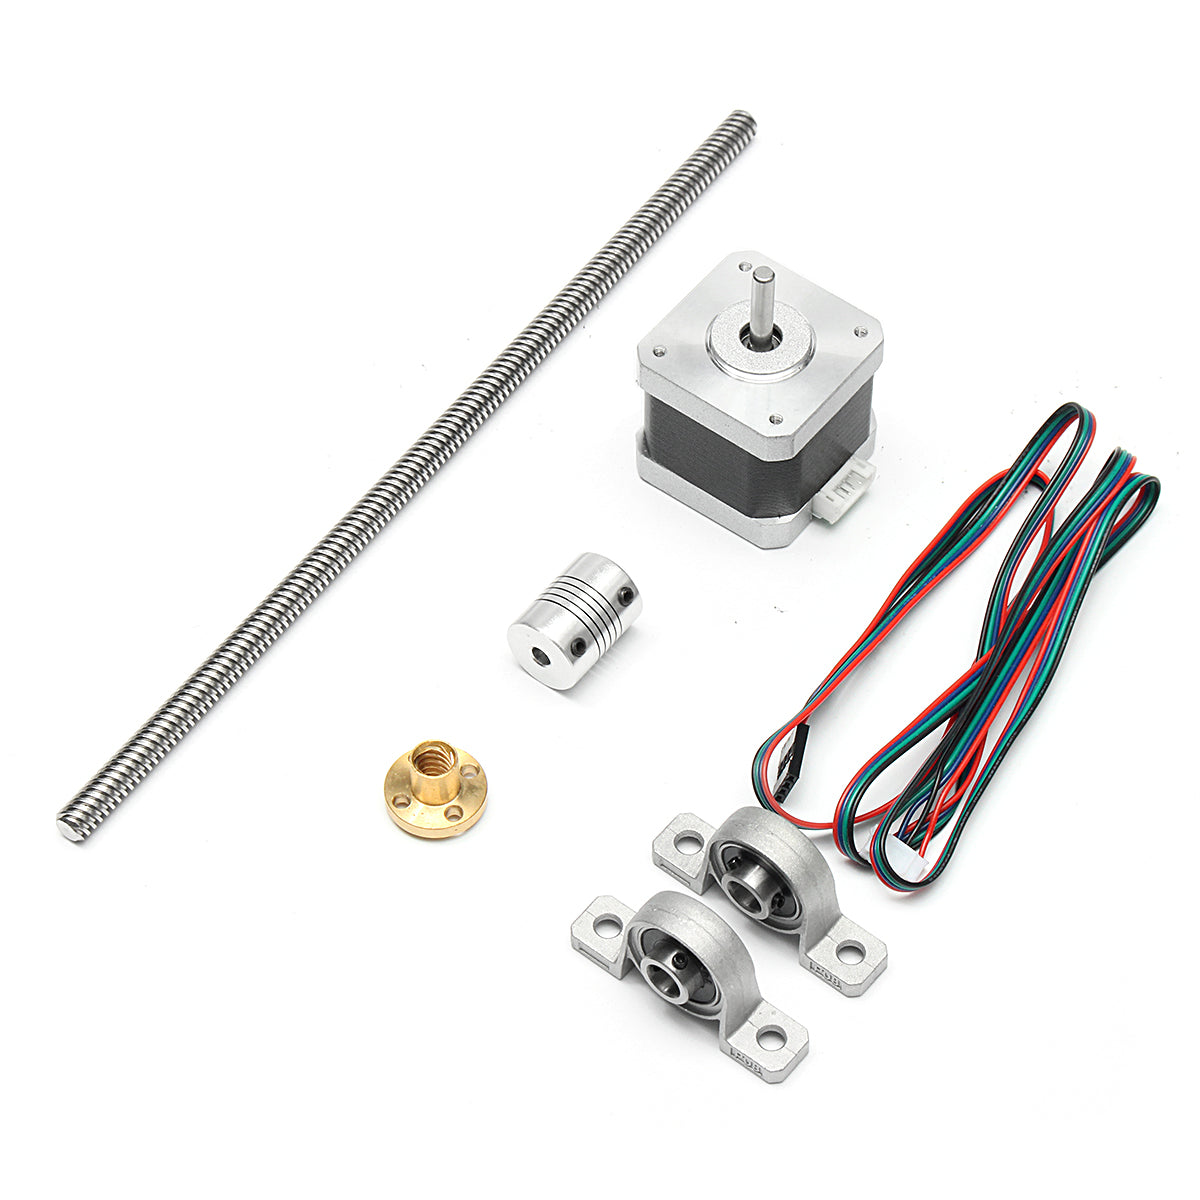 250MM T8 8mm Lead Screw Rod With Nut + Coupling + 2xBall Bearing + Motor Kit For 3D Printer